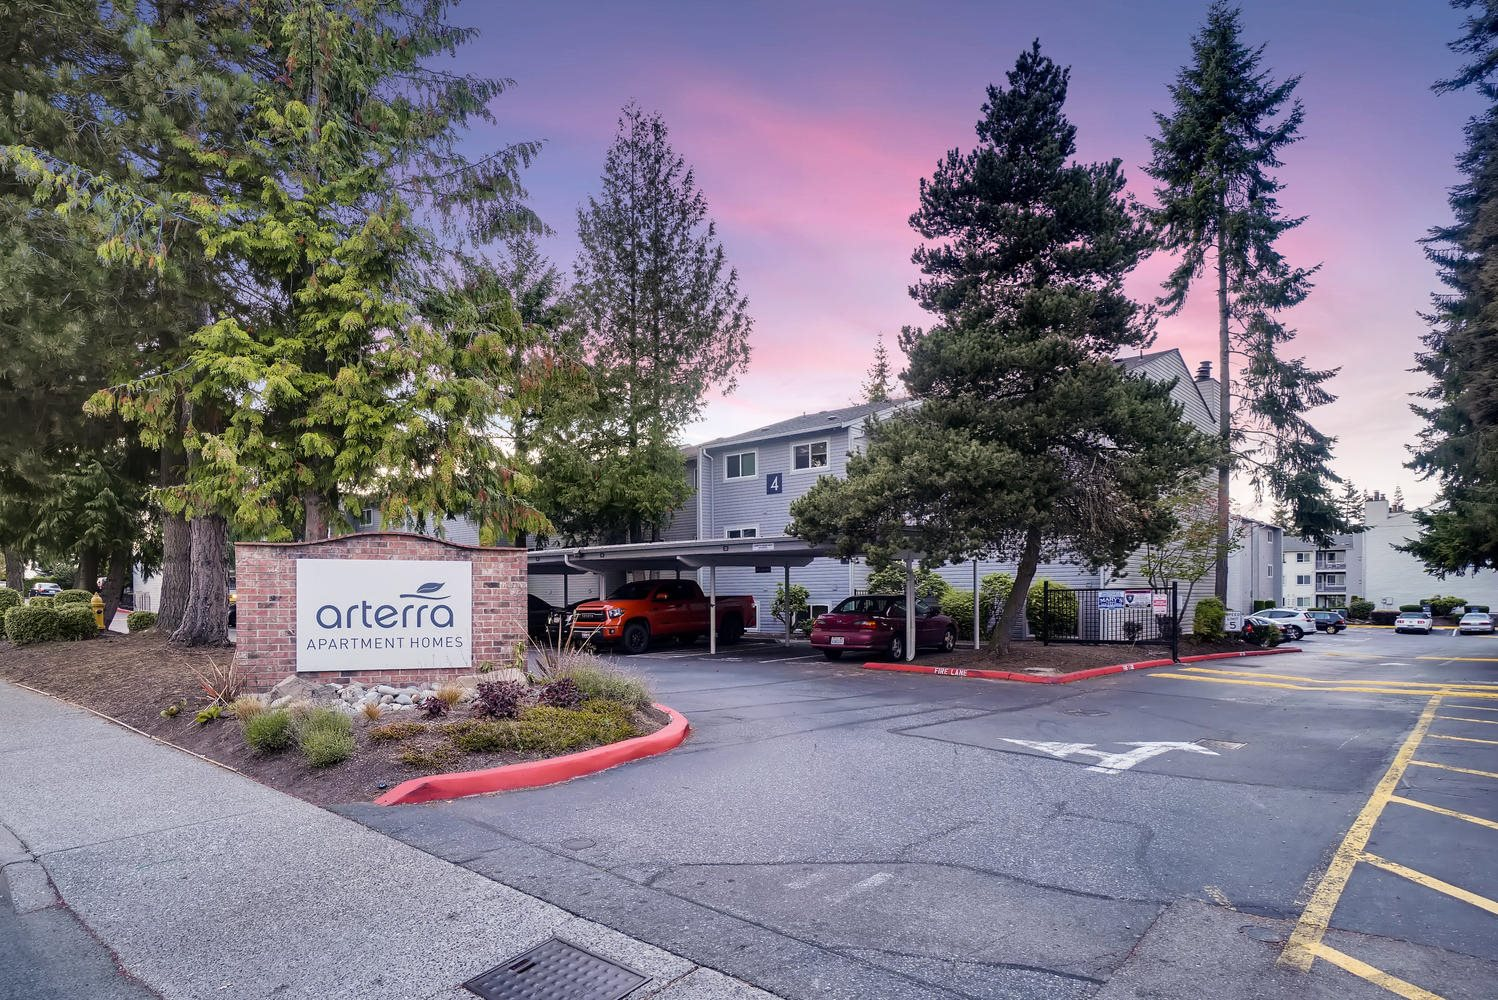 Arterra Apartments Front Entrance and Monument Sign